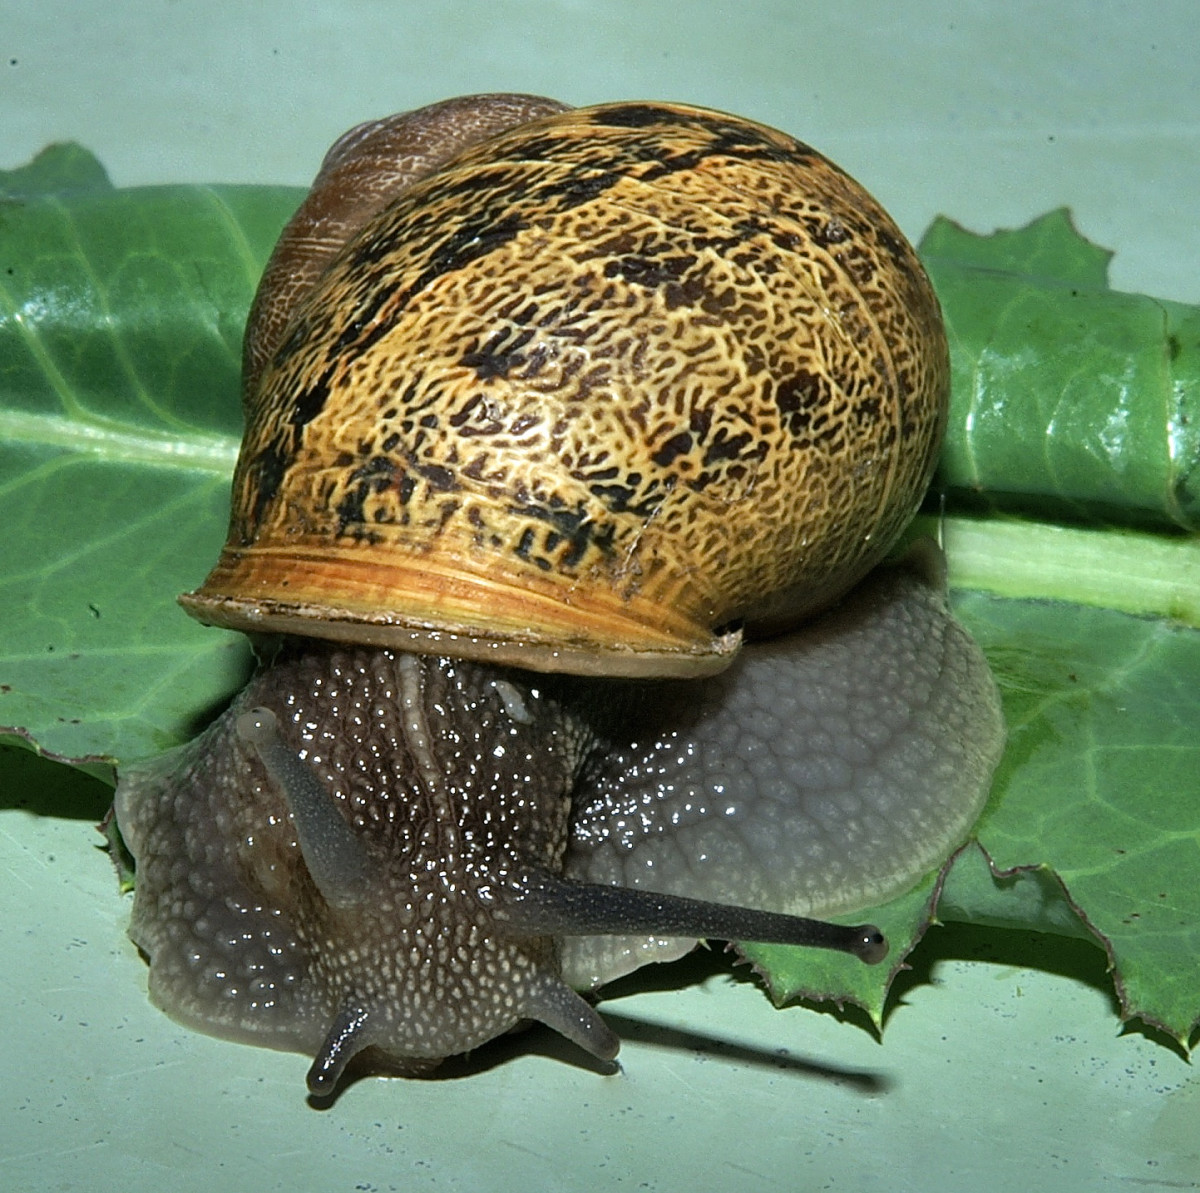 Snail blood contains hemocyanin.